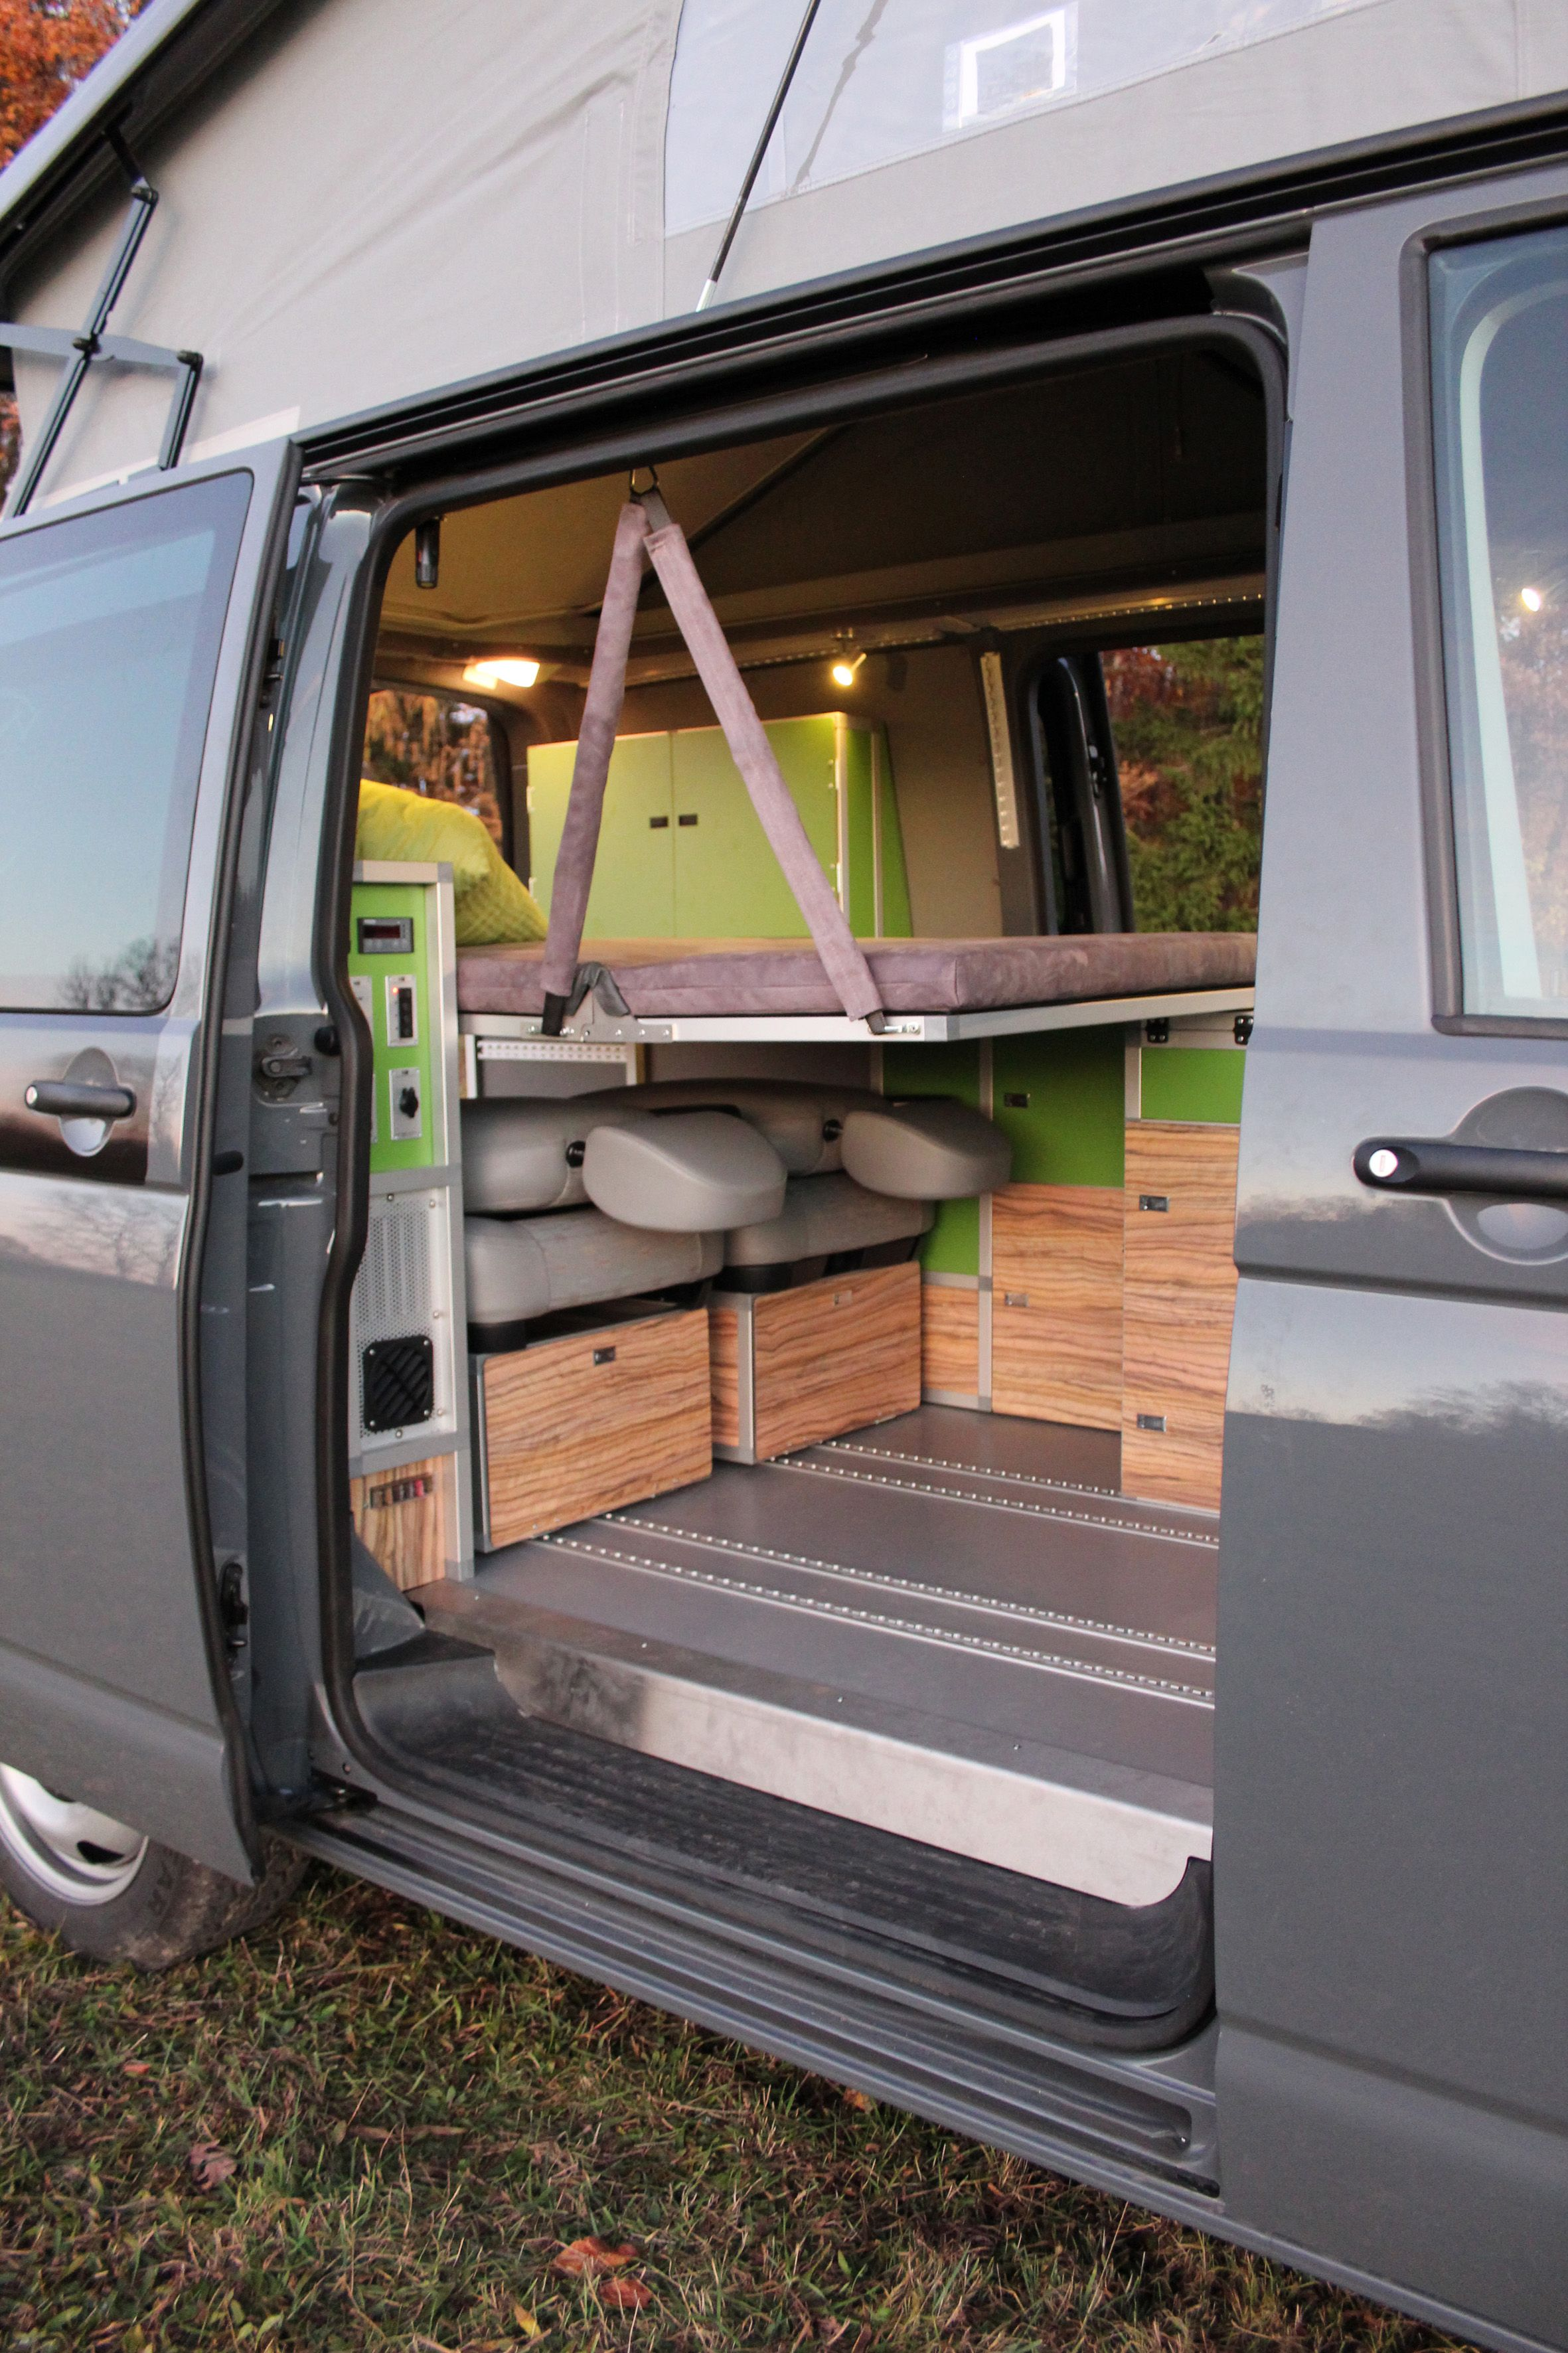 pin by angela hicks on house truck van camping minivan. Black Bedroom Furniture Sets. Home Design Ideas